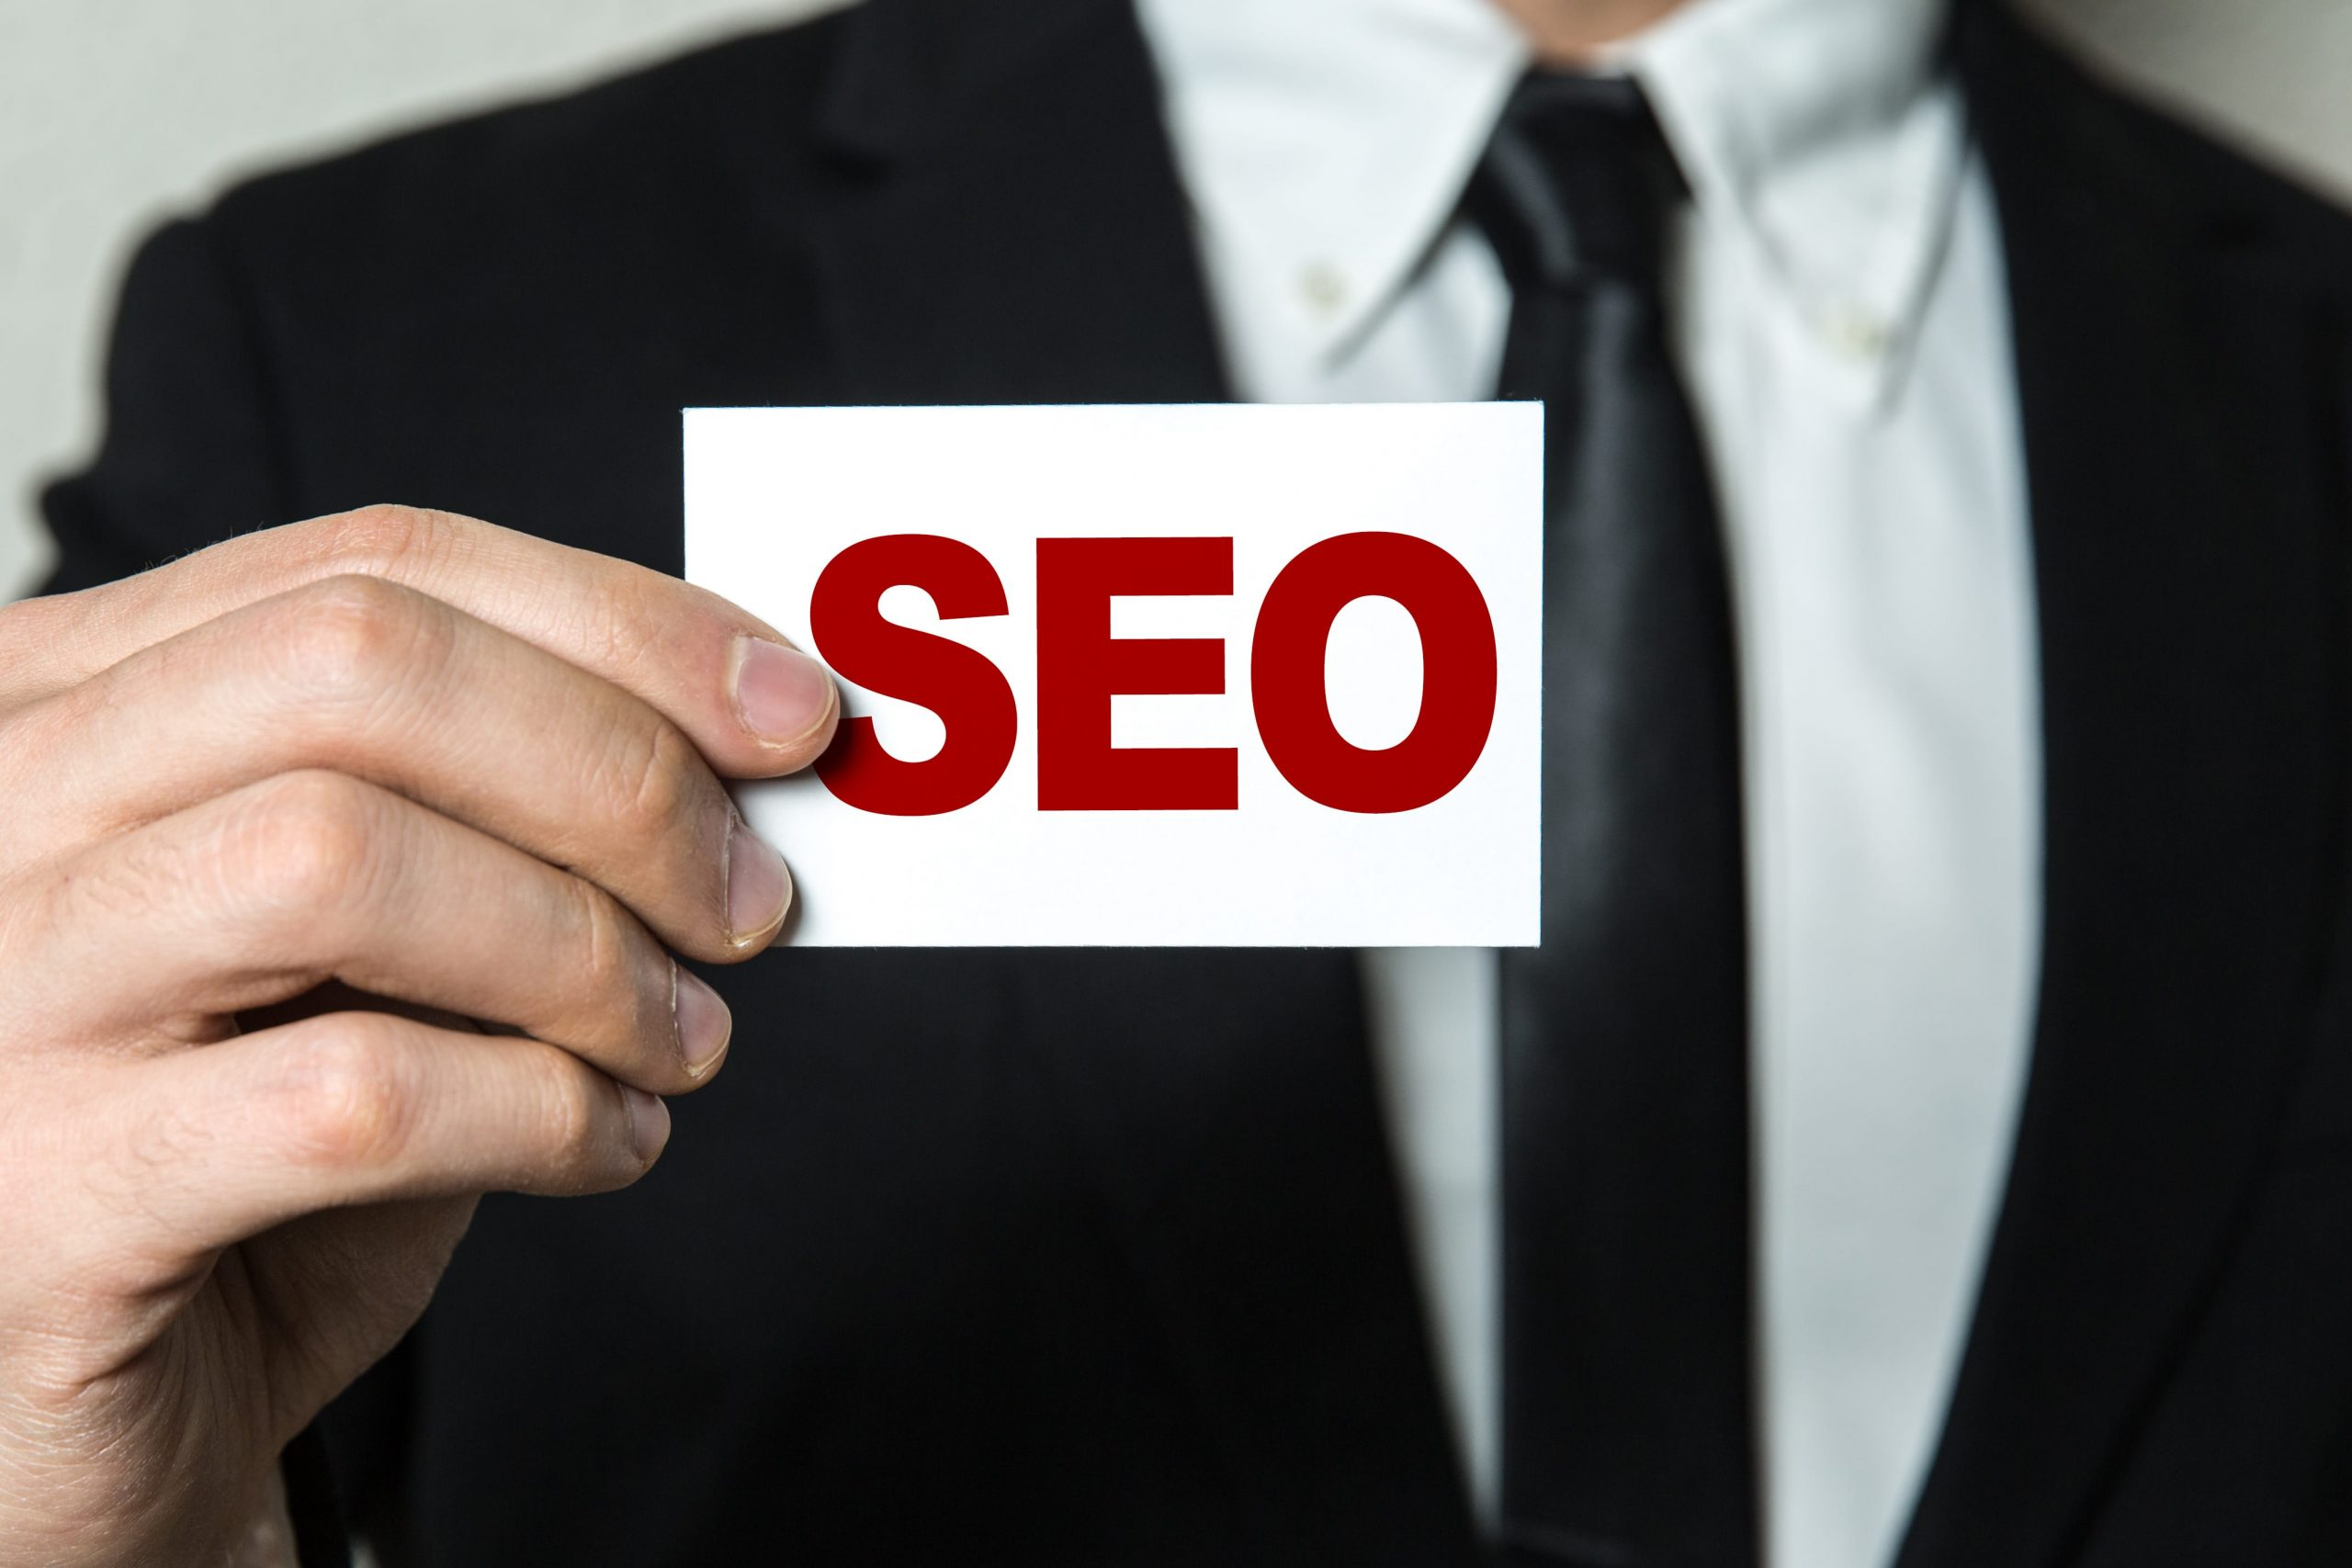 Freelance Business SEO Expert